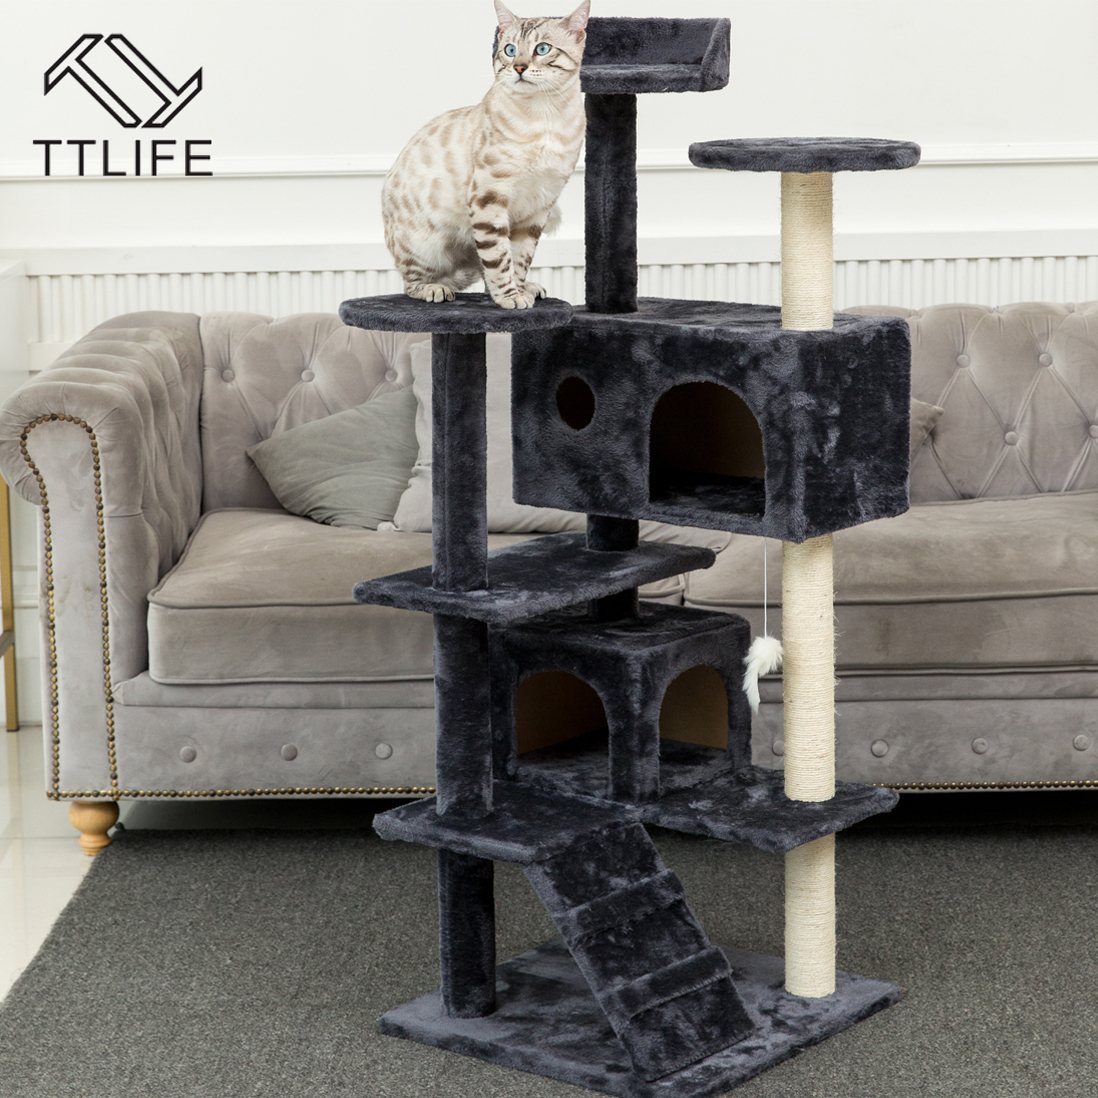 TTLIFE Cat Tree Tower Condo Furniture Scratch Post for Kittens Pet House Play Scratching Posts Plush Perches and Condo Cat Tower